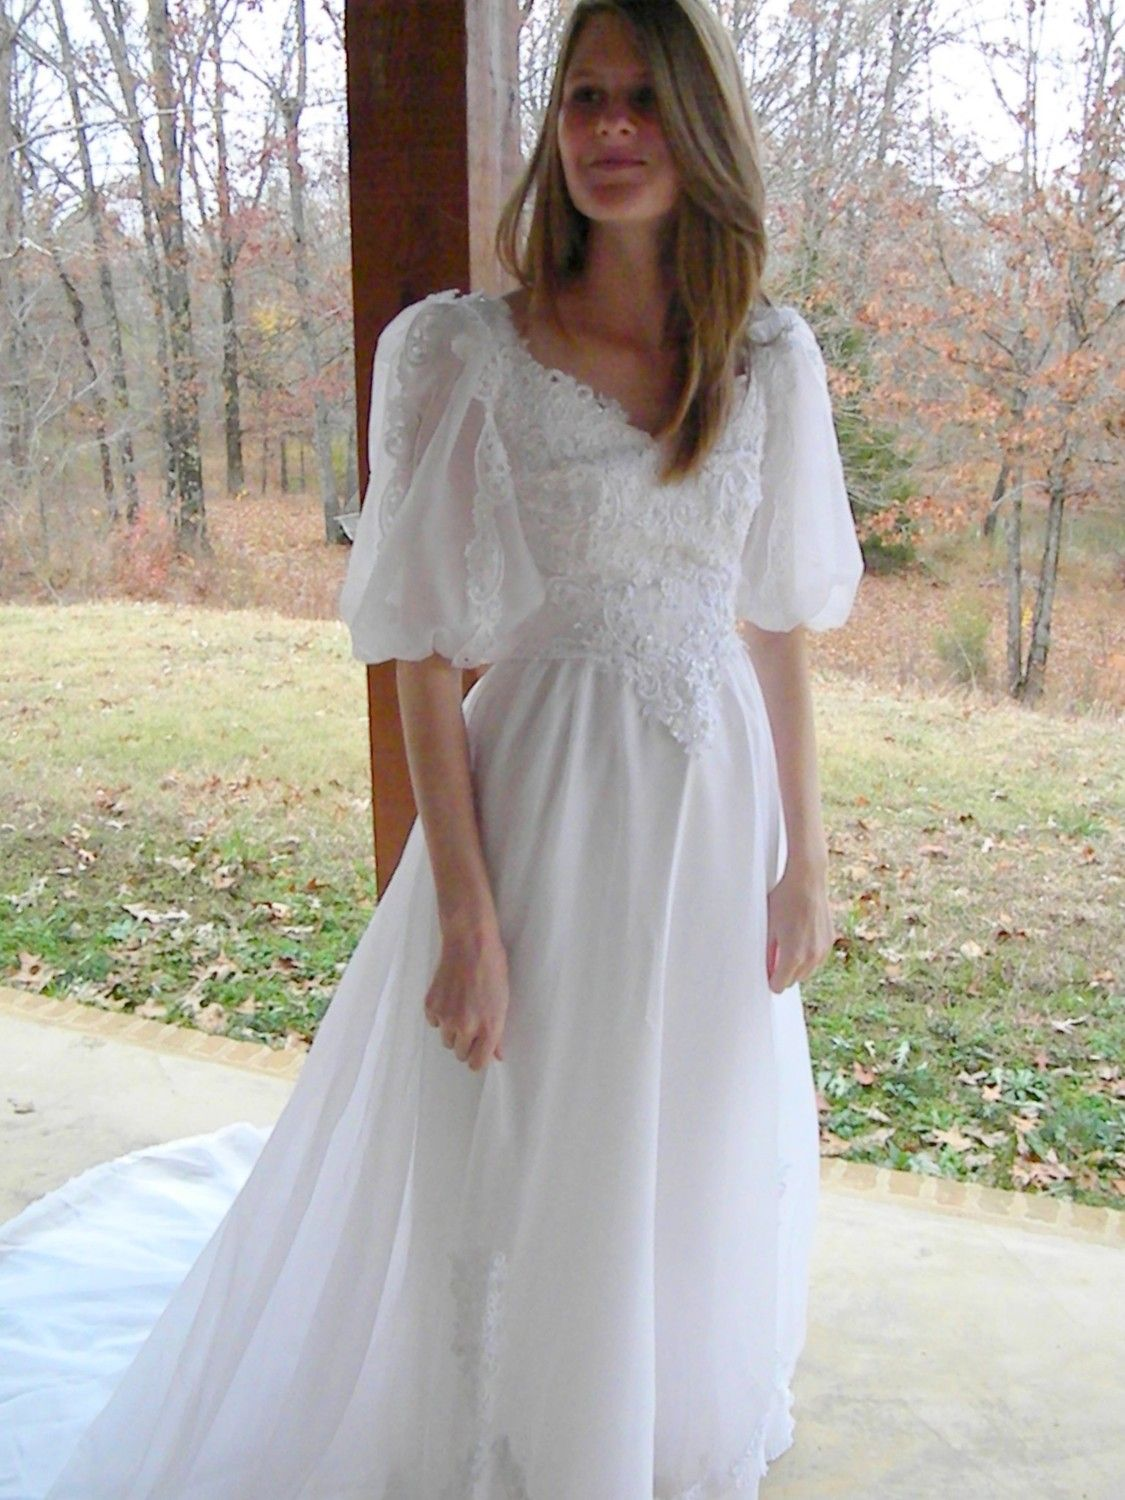 1980s wedding dress with puffy sleeves. [more at pinterest